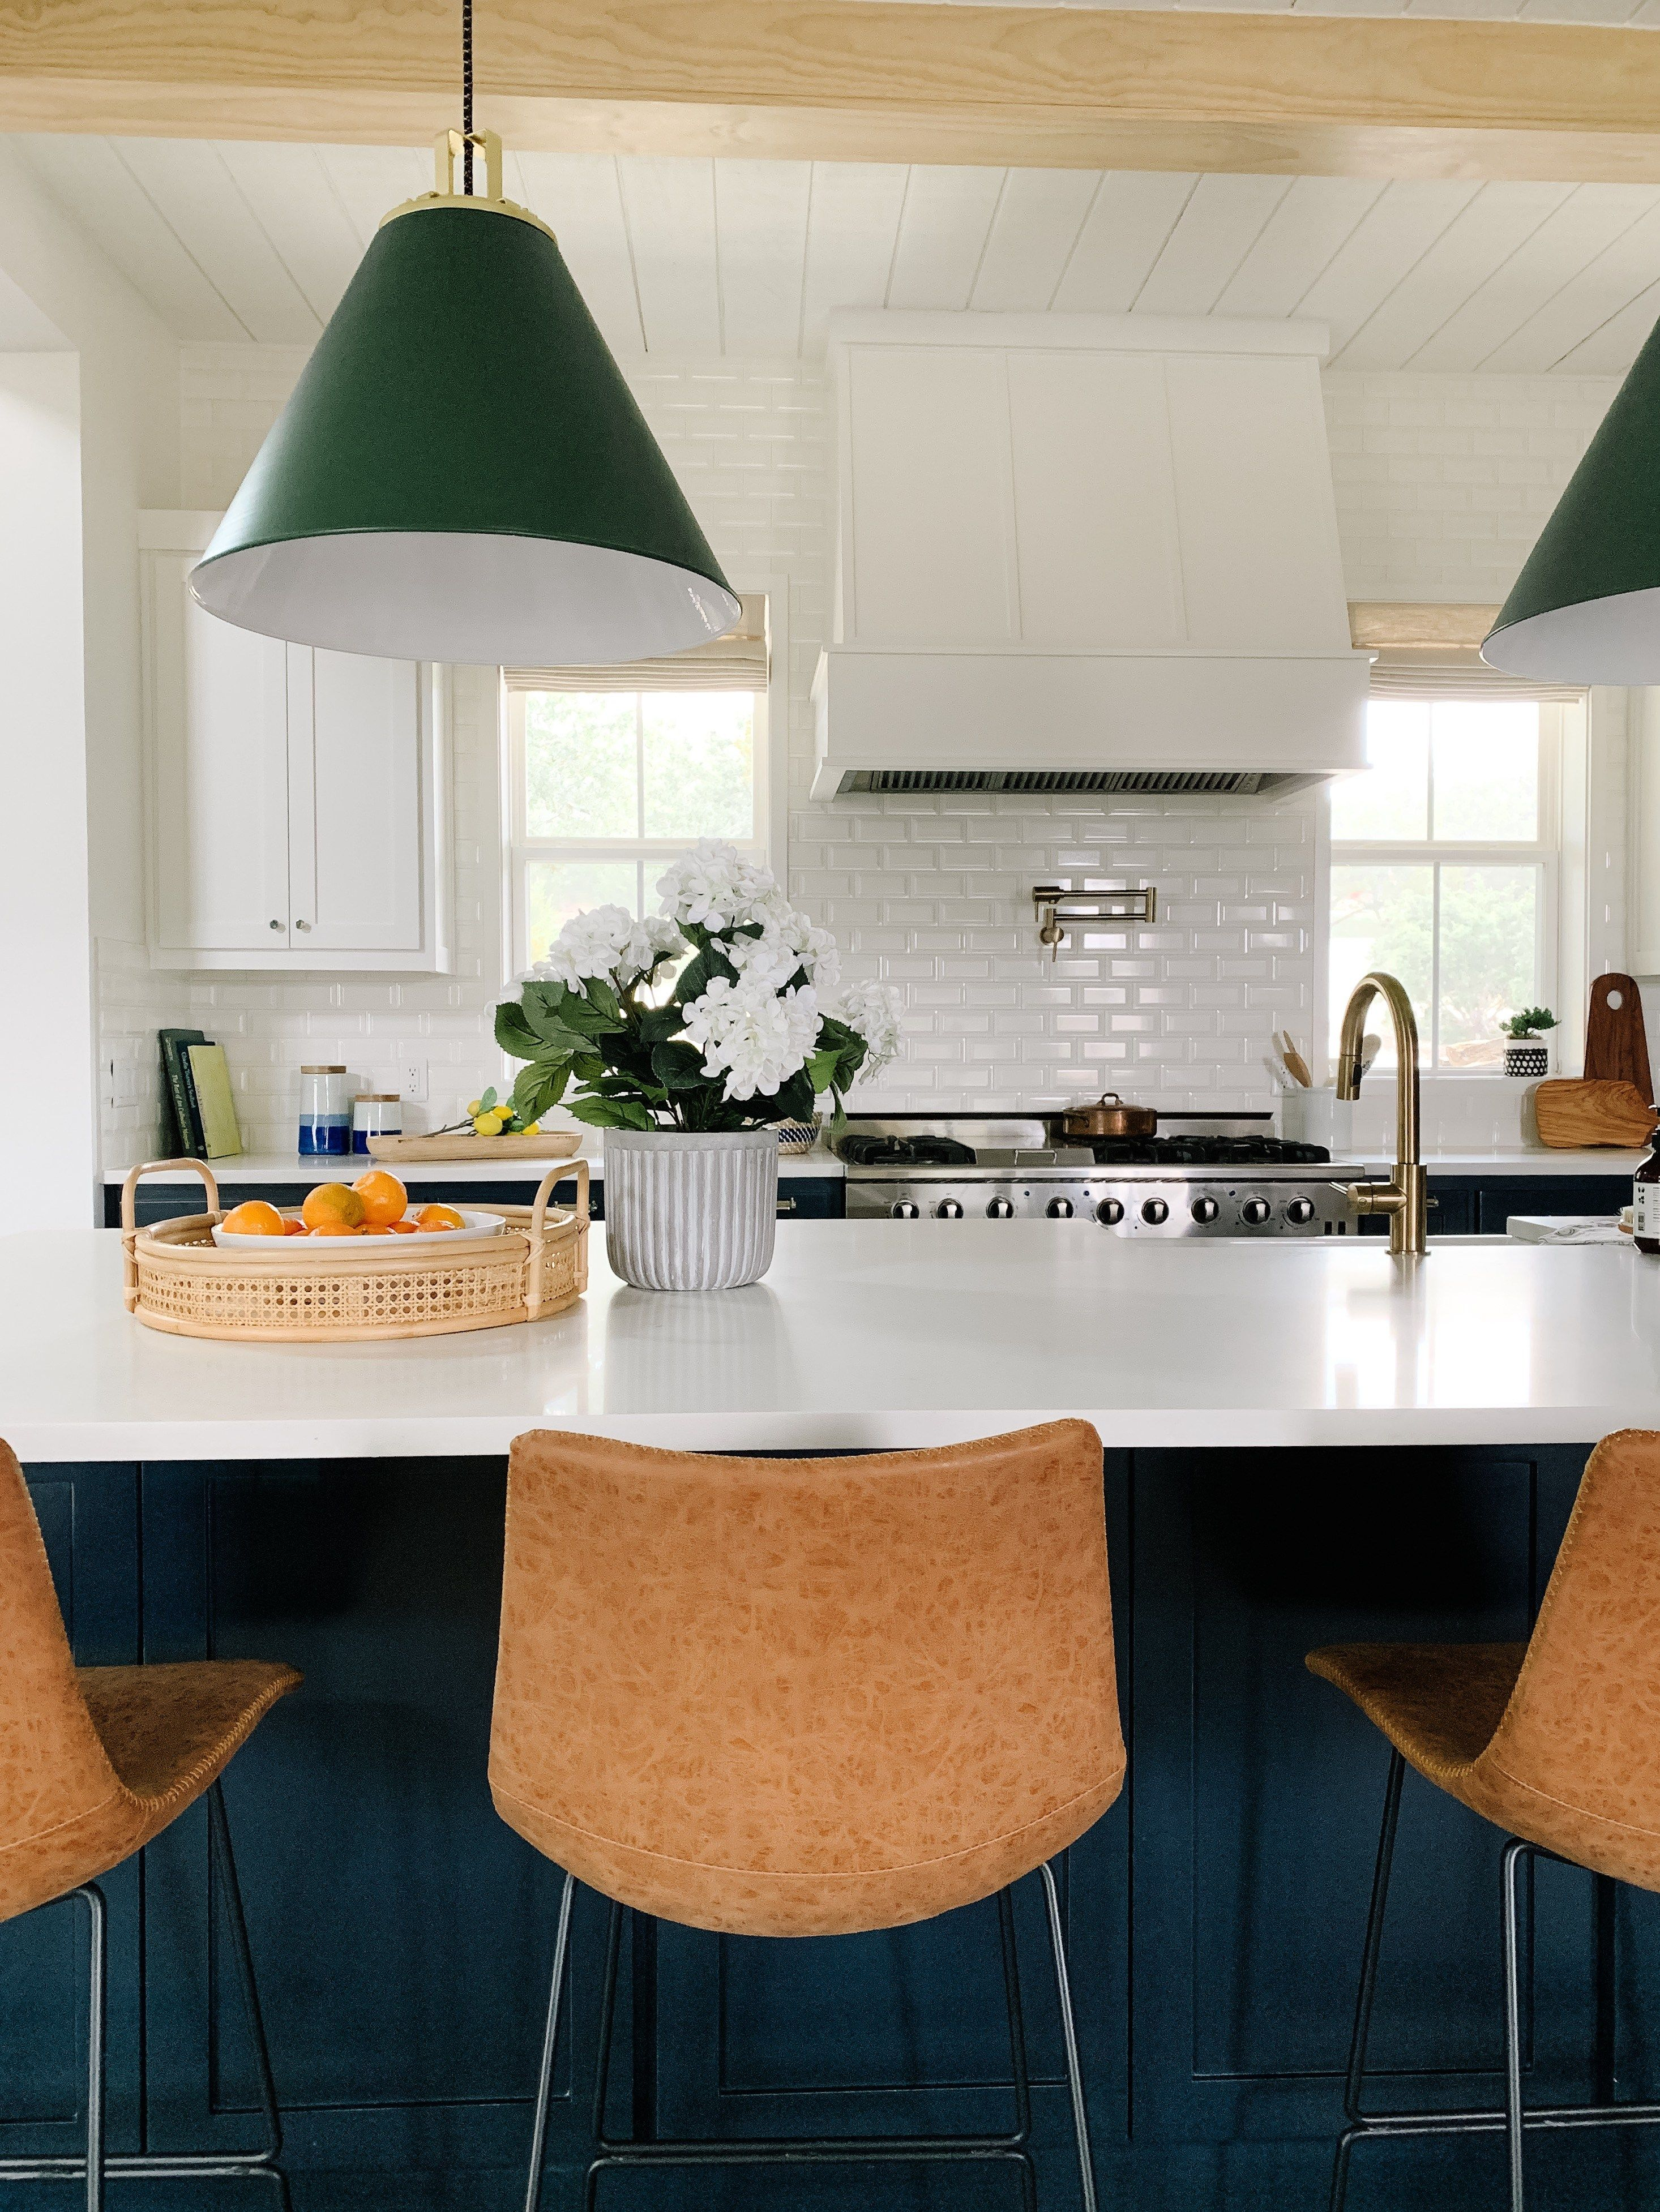 Hale navy kitchen and leather stools black